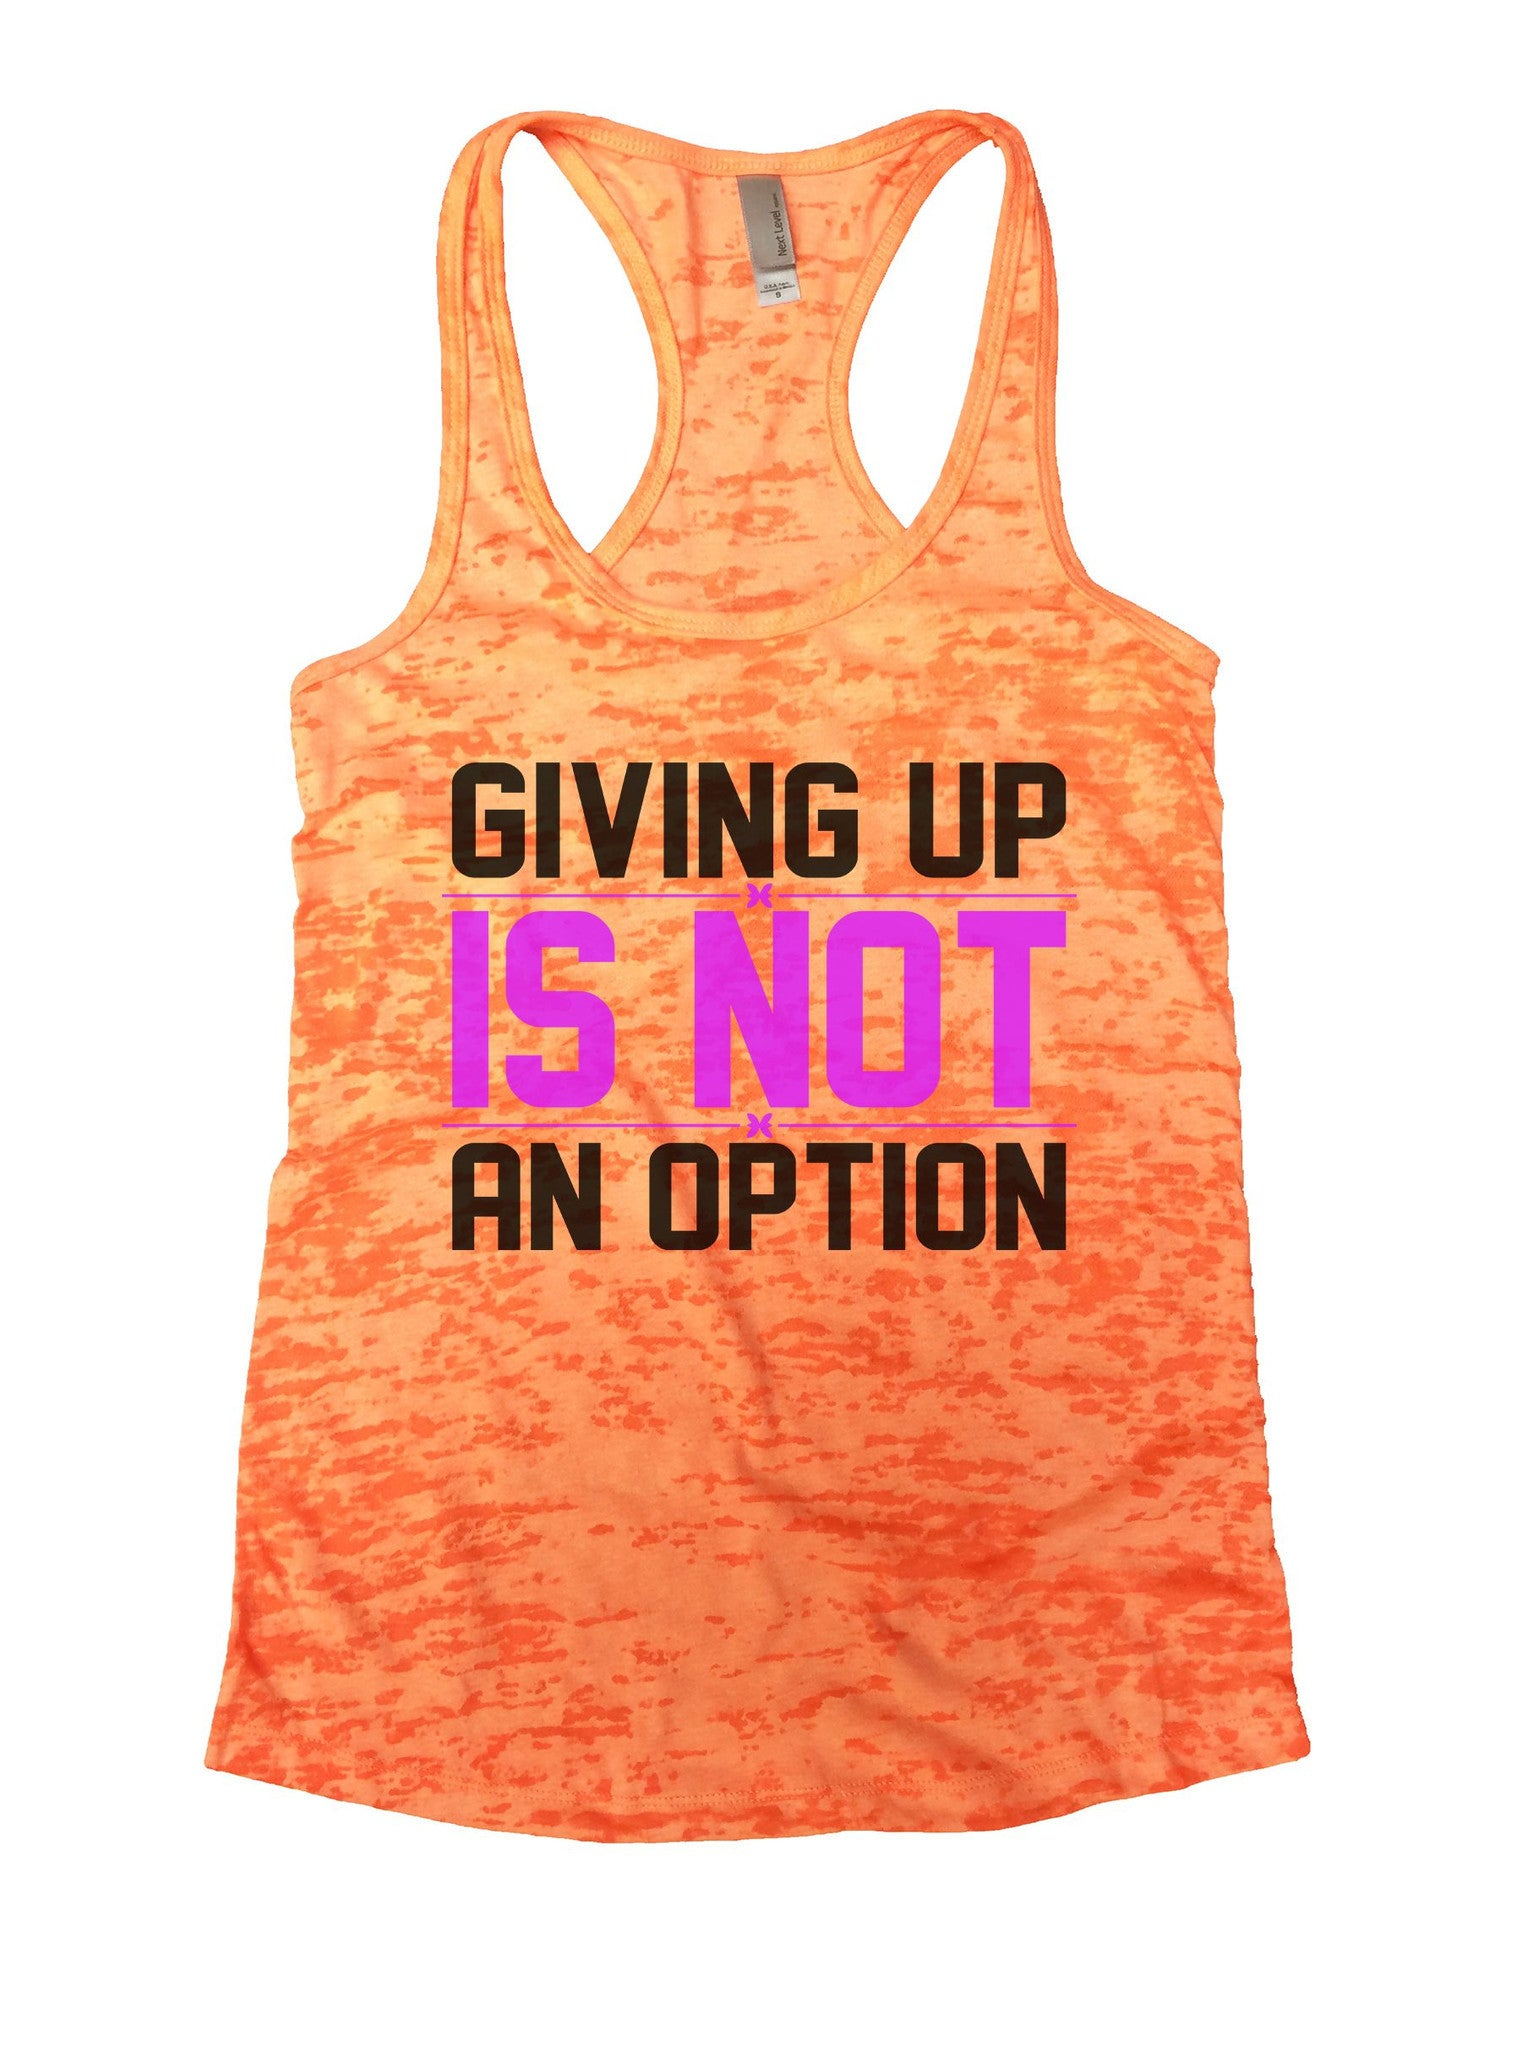 Giving Up Is Not An Option Burnout Tank Top By BurnoutTankTops.com - 862 - Funny Shirts Tank Tops Burnouts and Triblends  - 3